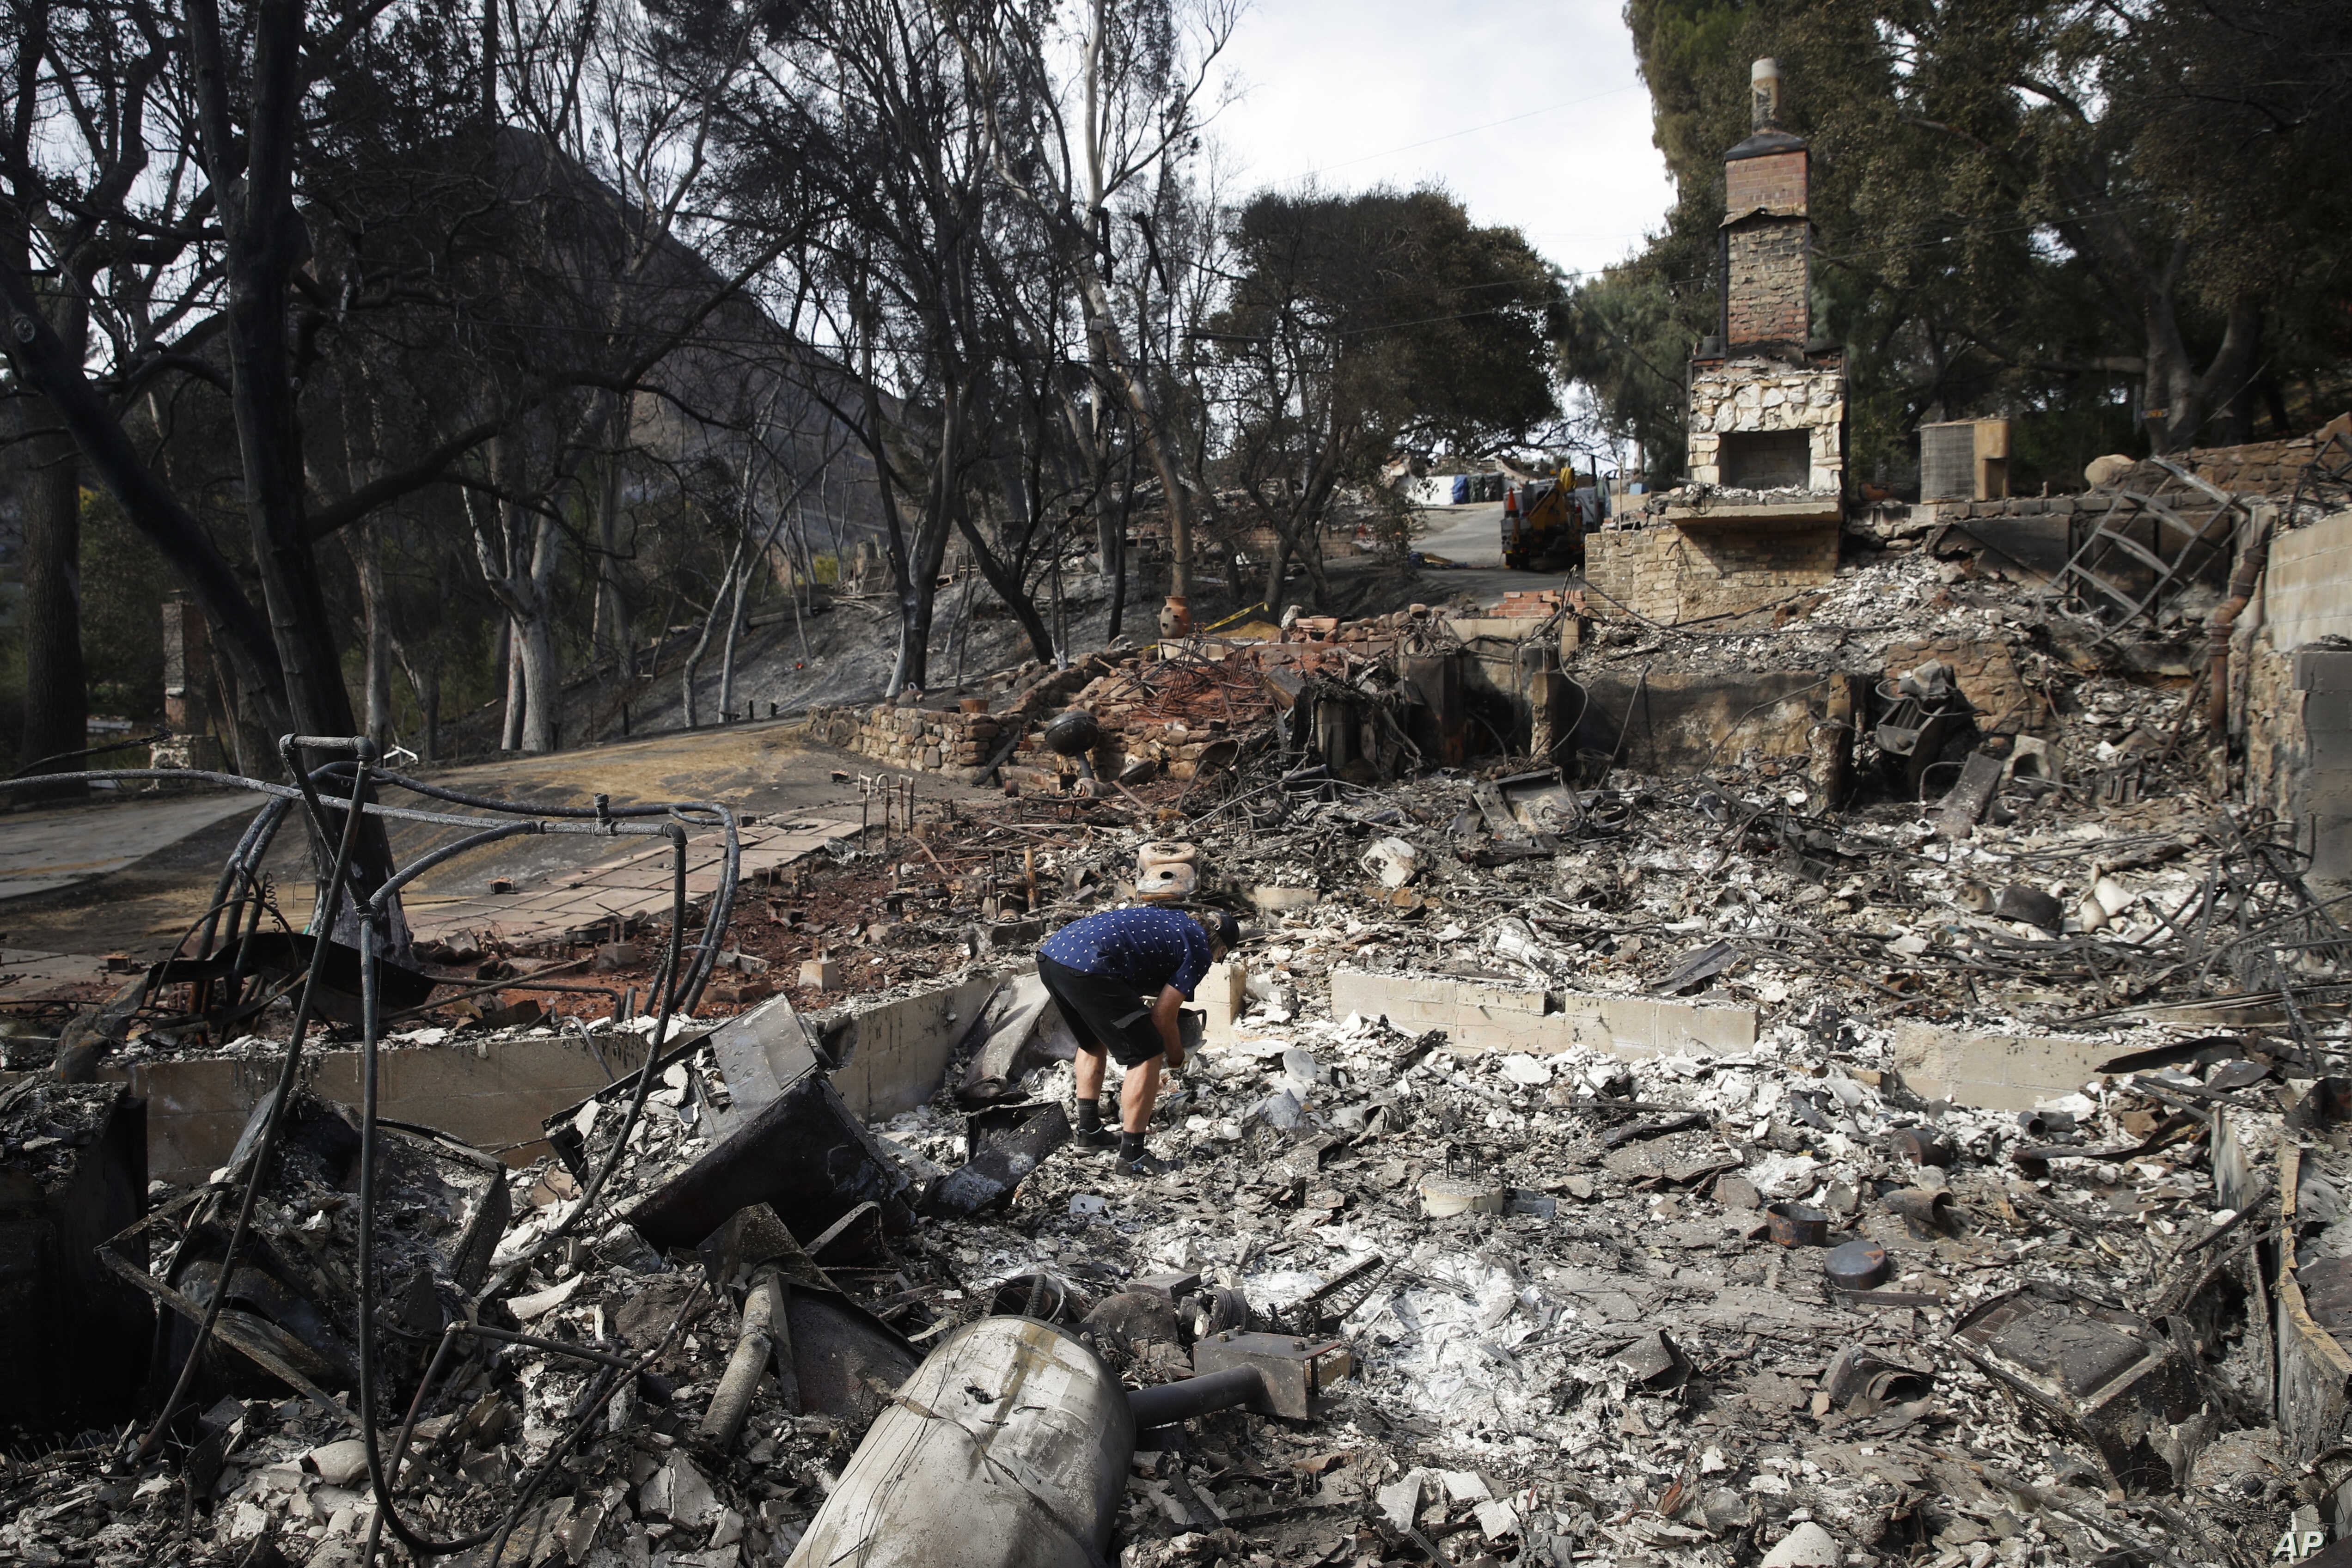 Roger Kelton searches through the remains of his mother-in-law's home leveled by the Woolsey Fire, Nov. 13, 2018, in the southern California city of Agoura Hills.